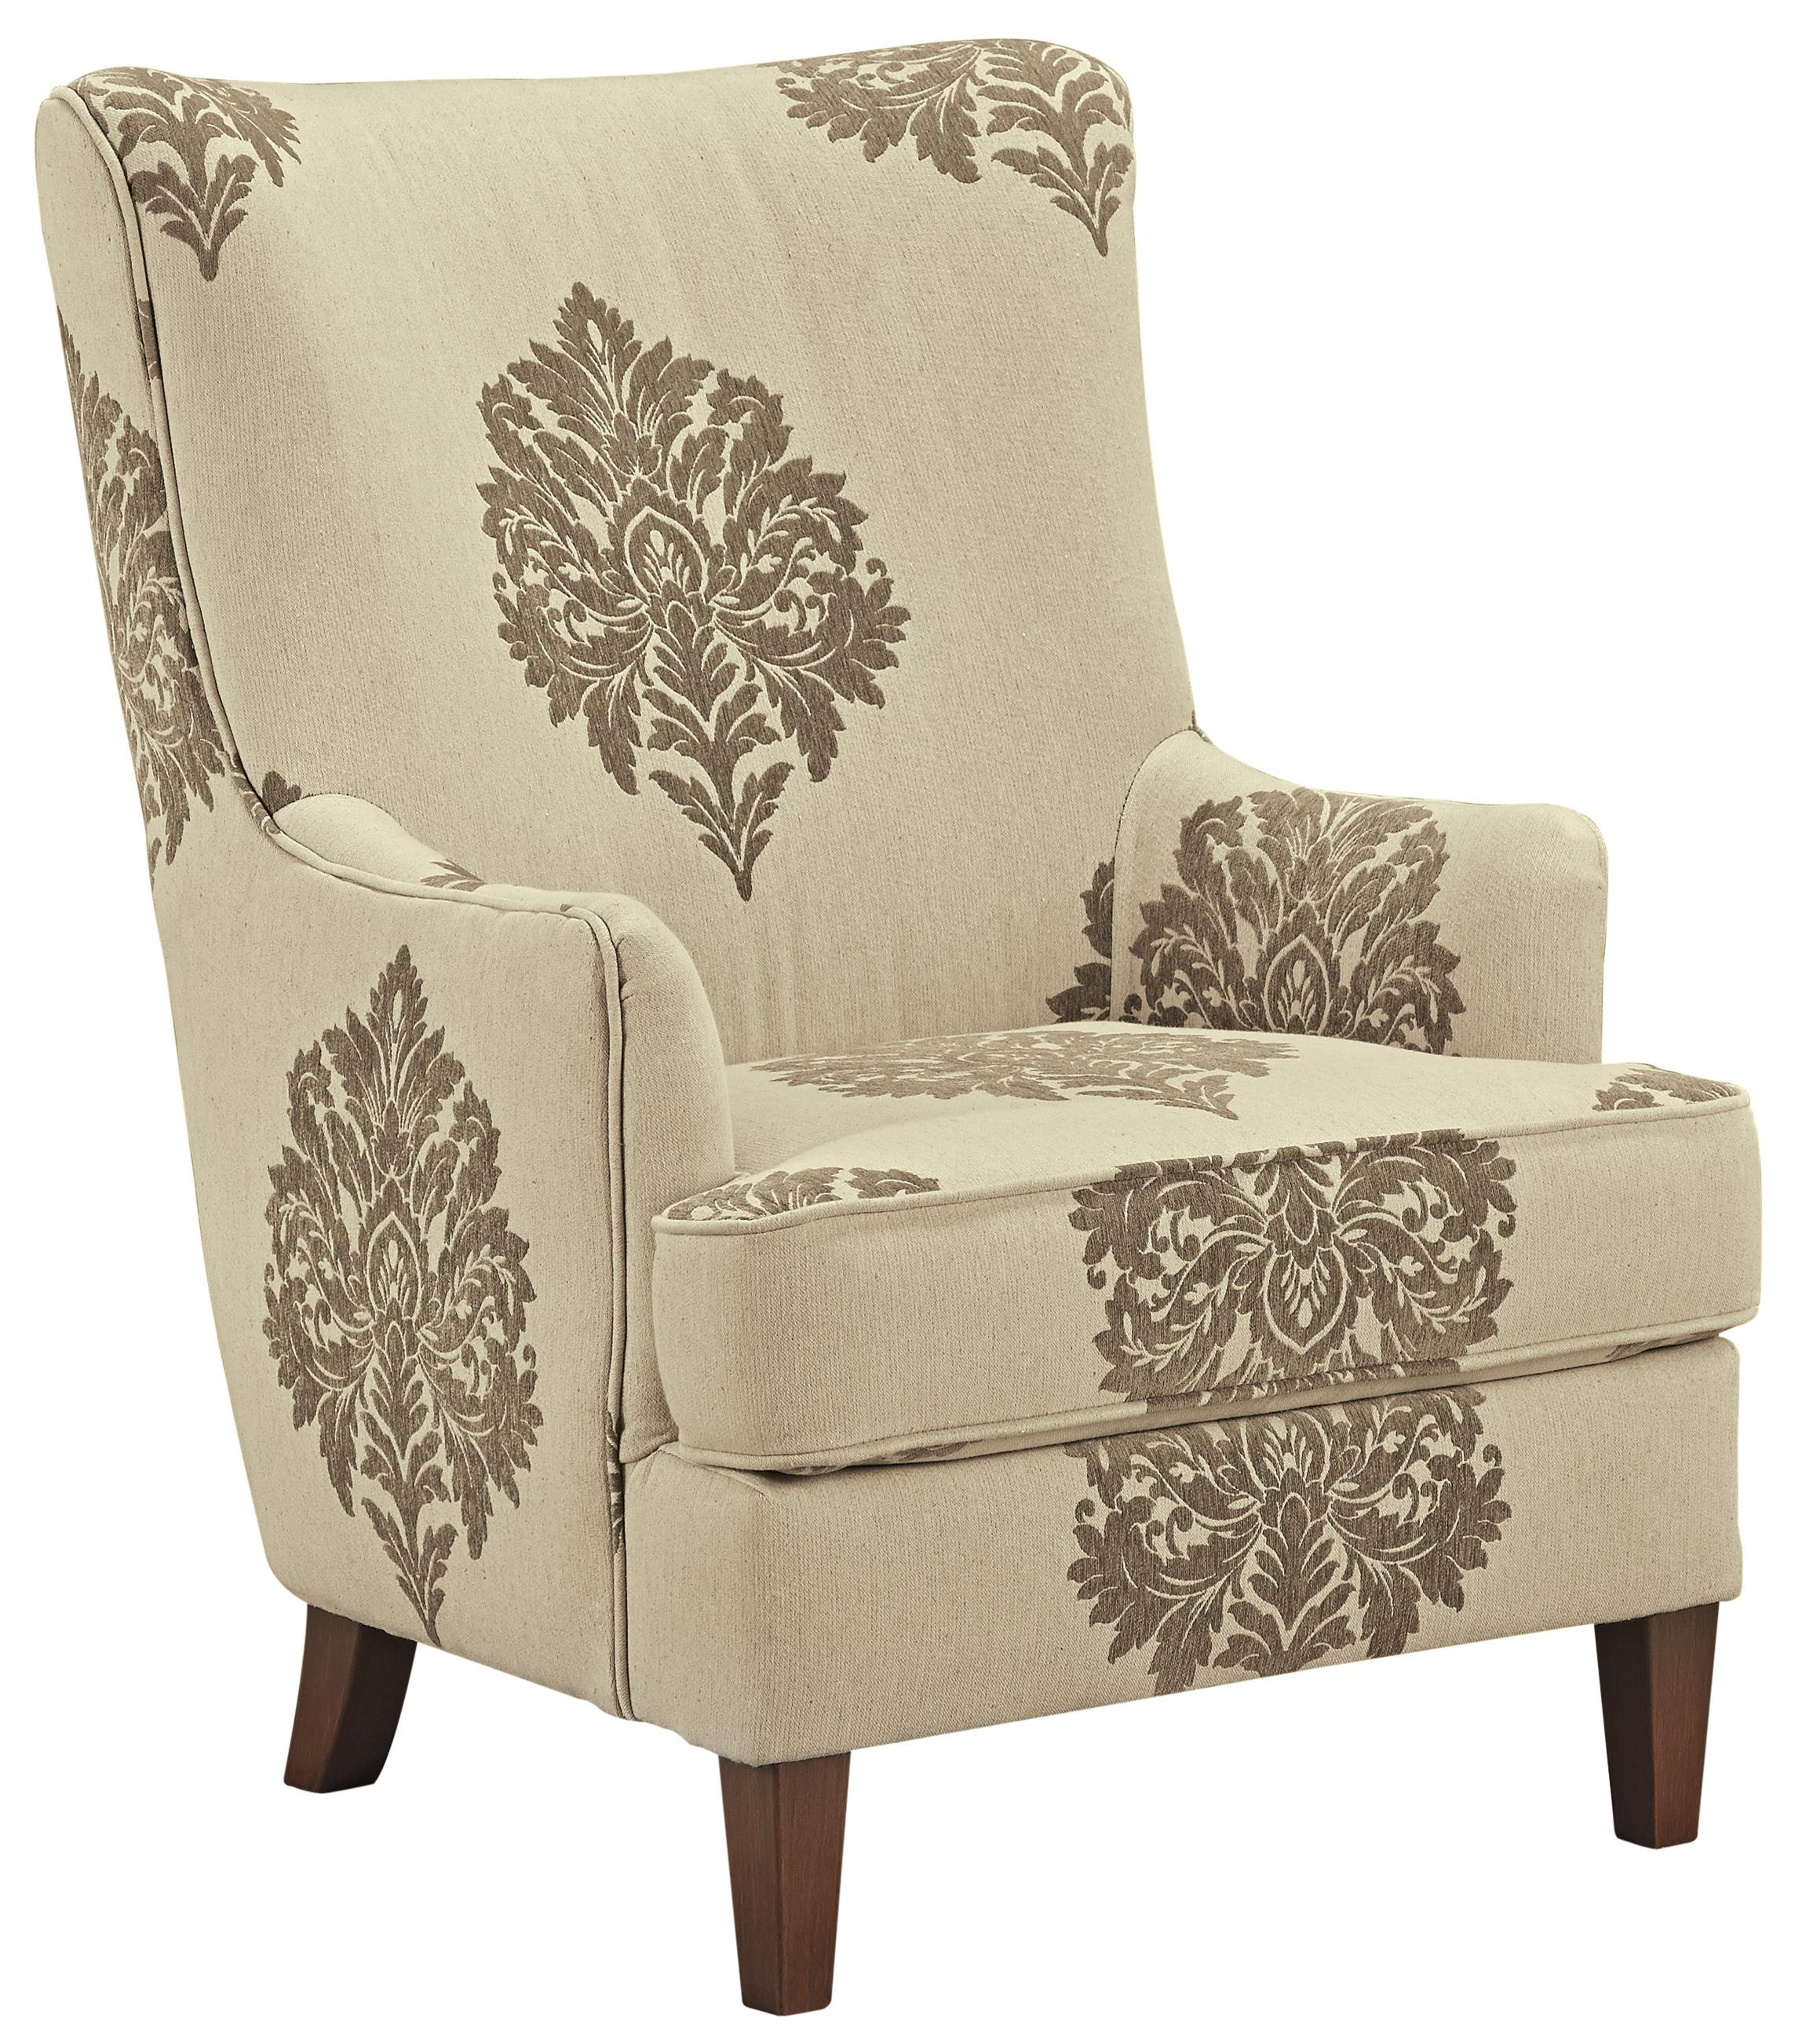 Signature Design by Ashley Berwyn View Accents Accent Chair - Item Number: 898XX21